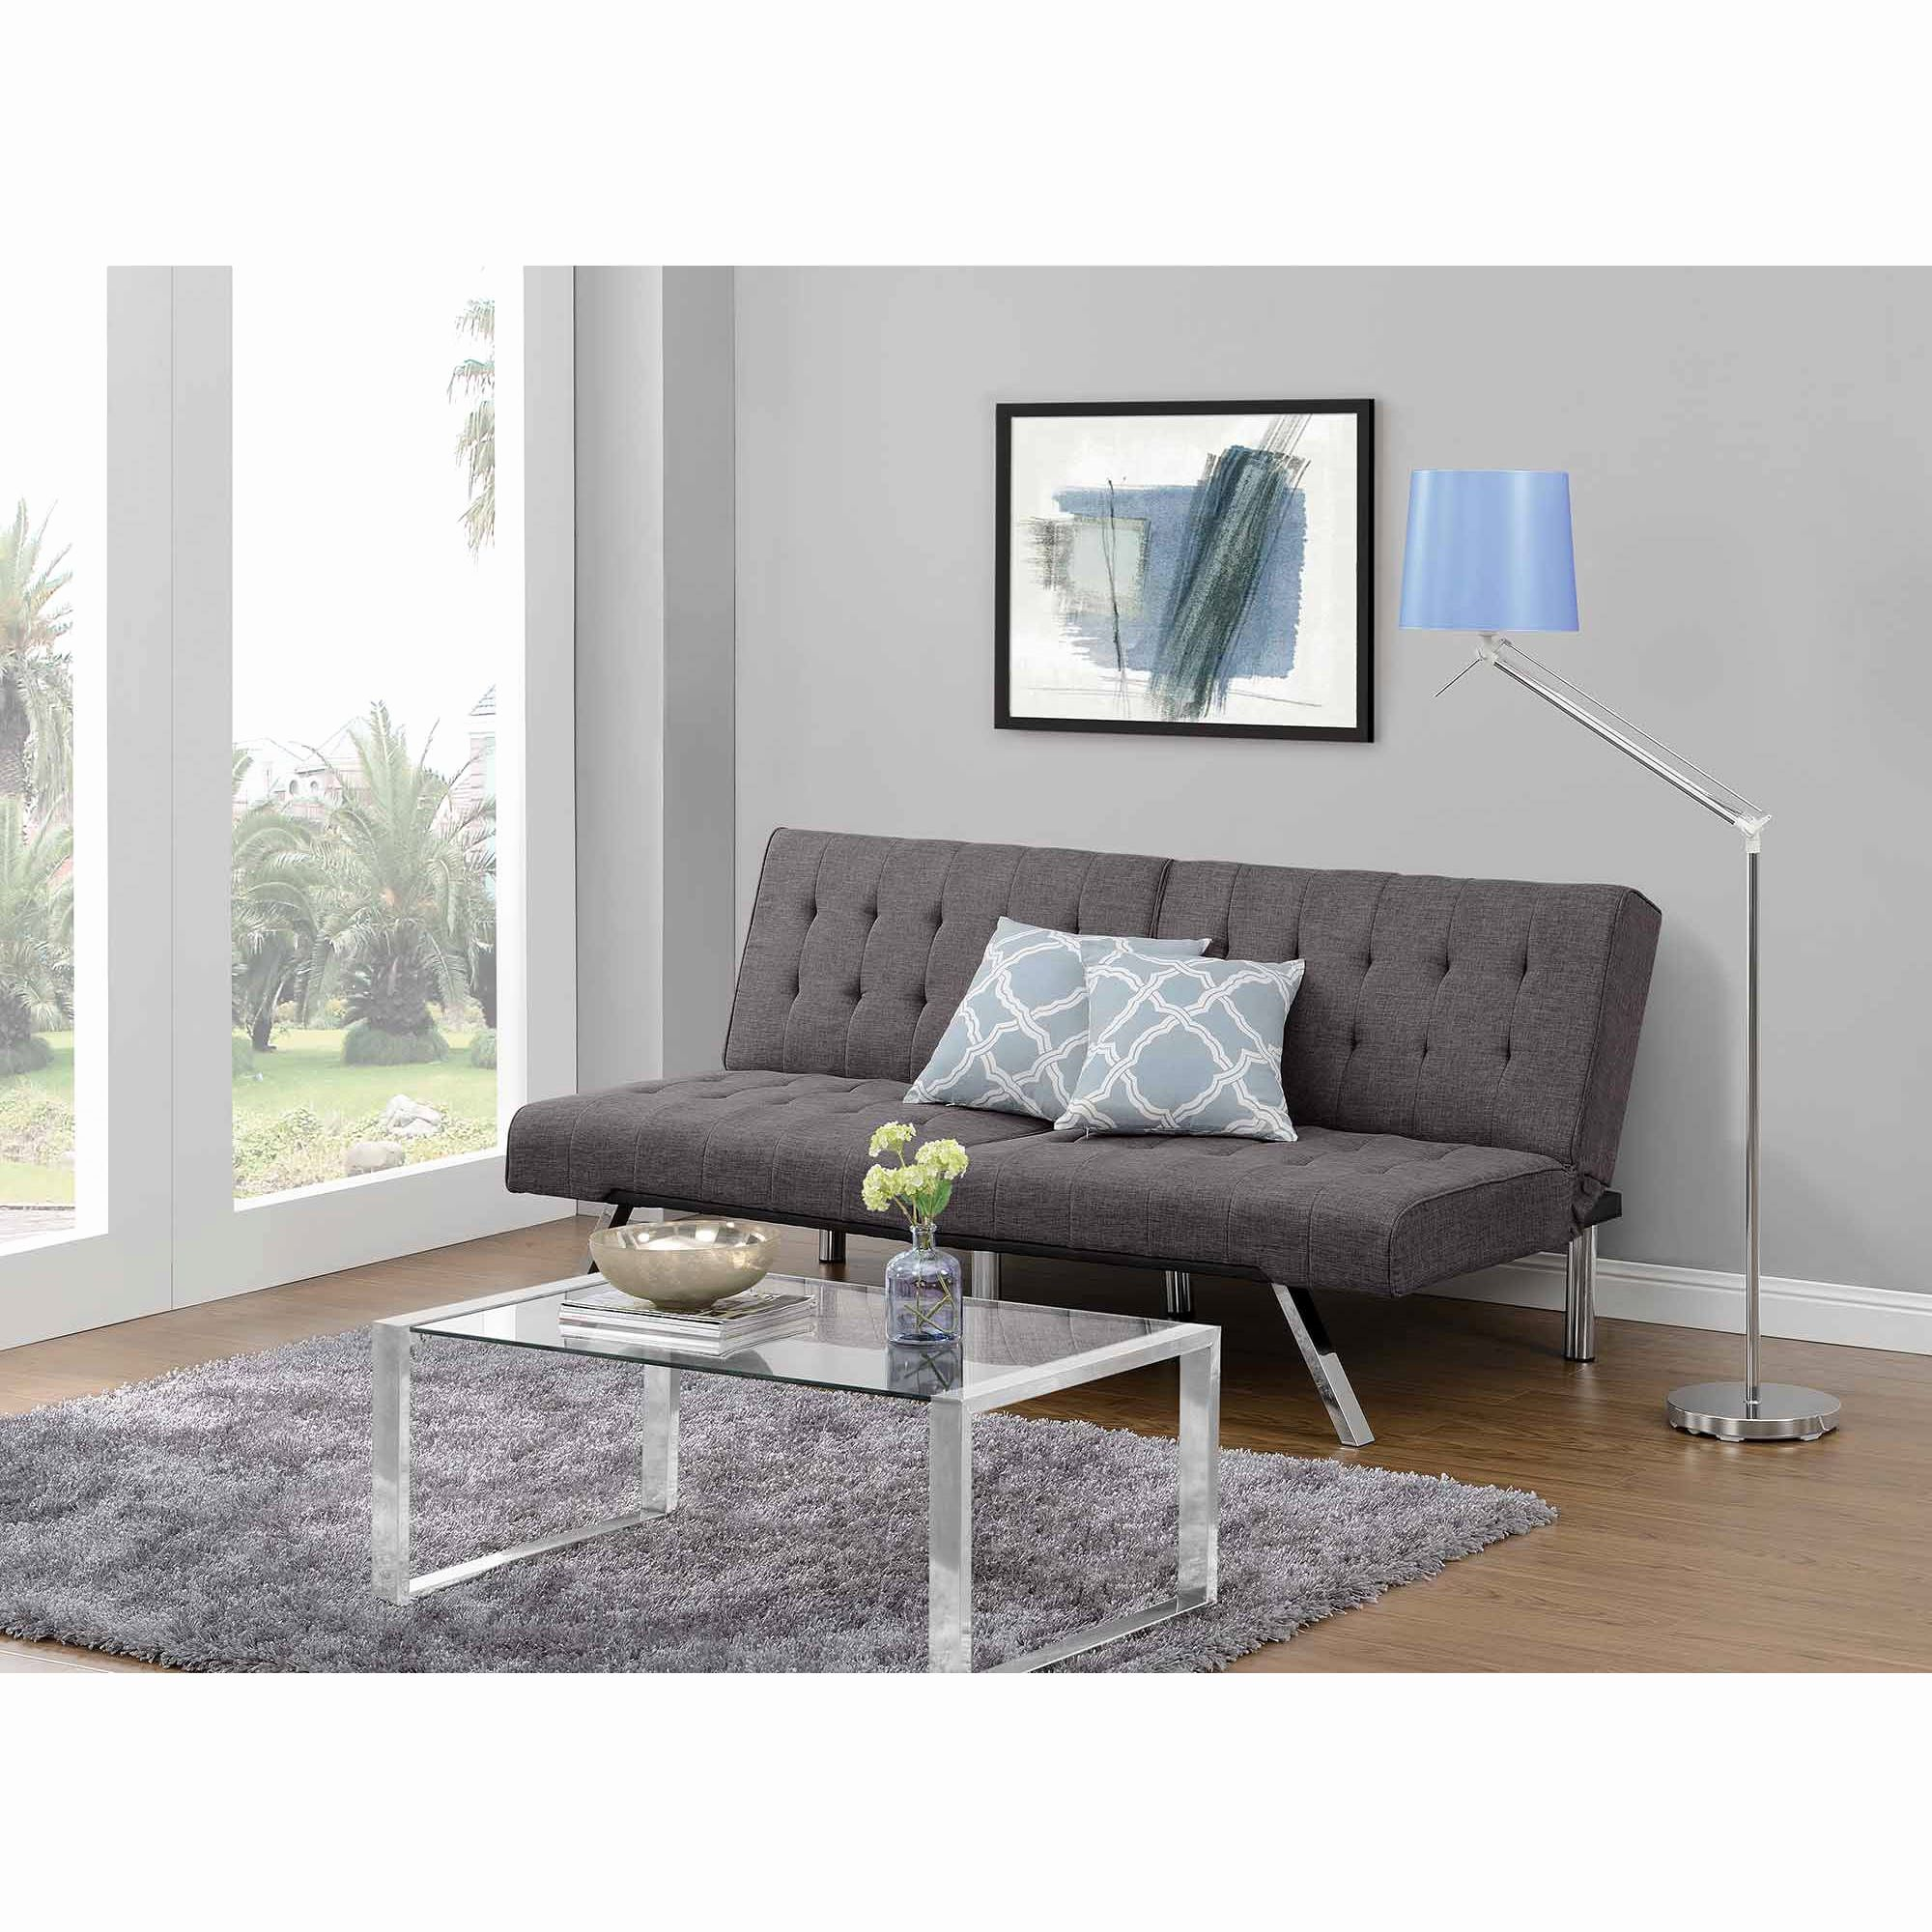 Moderne Sofa Idea Office Sofa Bed Picture Best Choice Products Modern